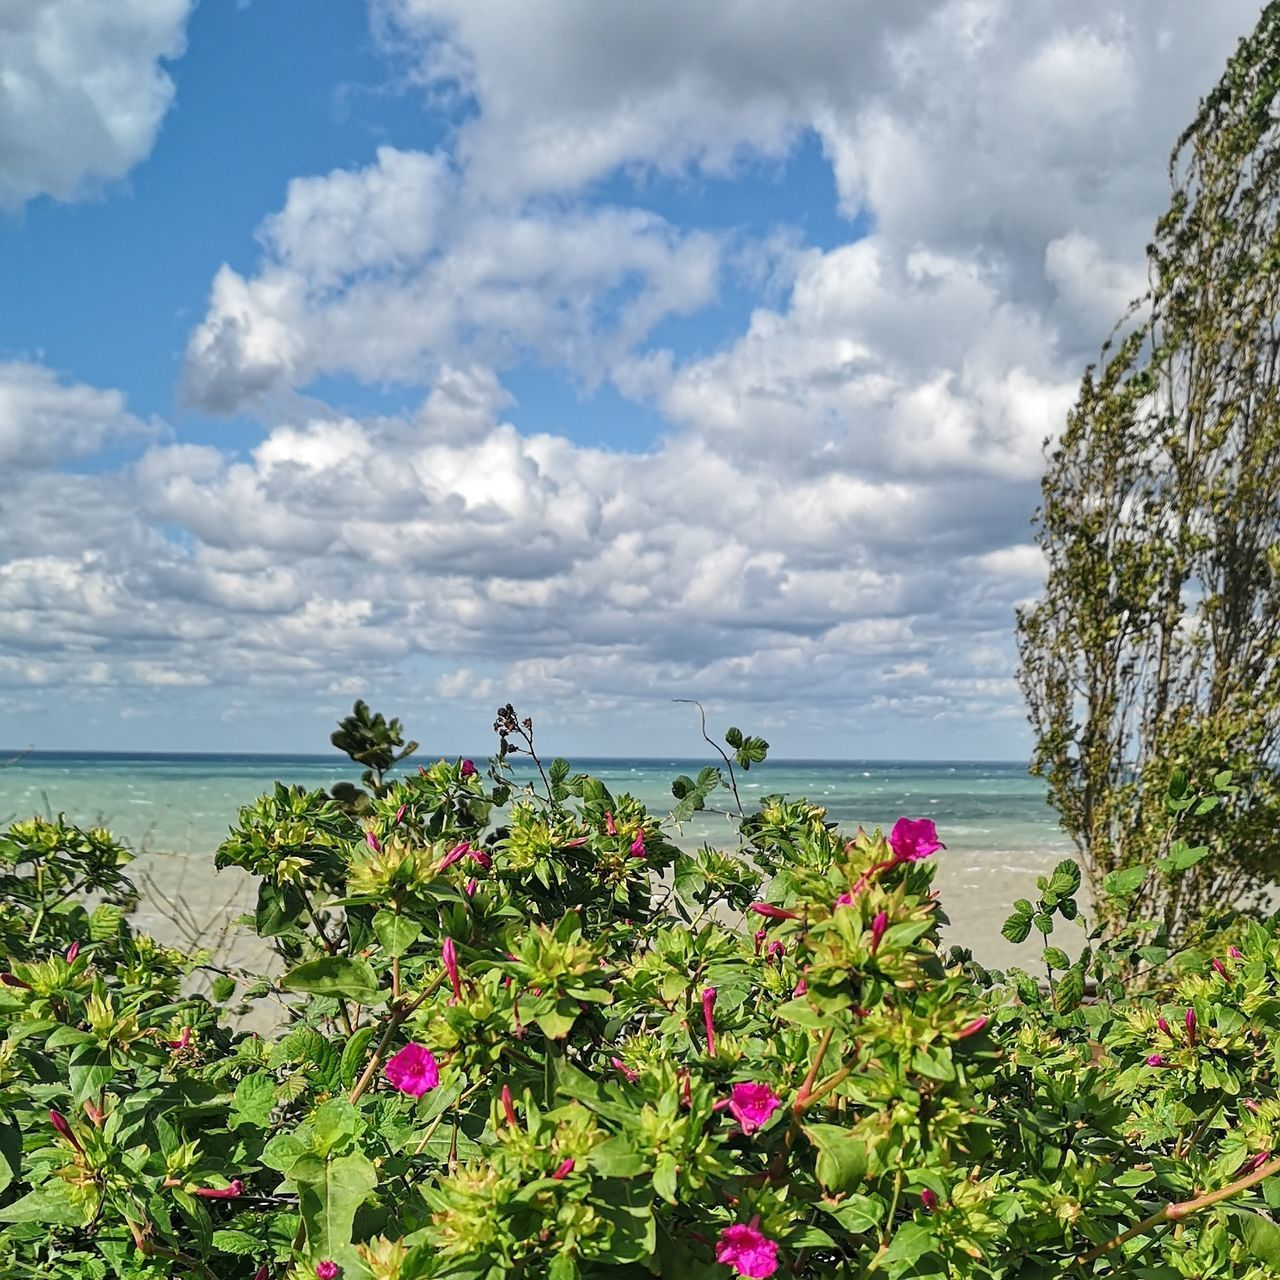 plant, sky, flowering plant, beauty in nature, flower, cloud - sky, growth, water, sea, nature, freshness, scenics - nature, vulnerability, day, tranquility, tranquil scene, fragility, horizon over water, horizon, no people, outdoors, flower head